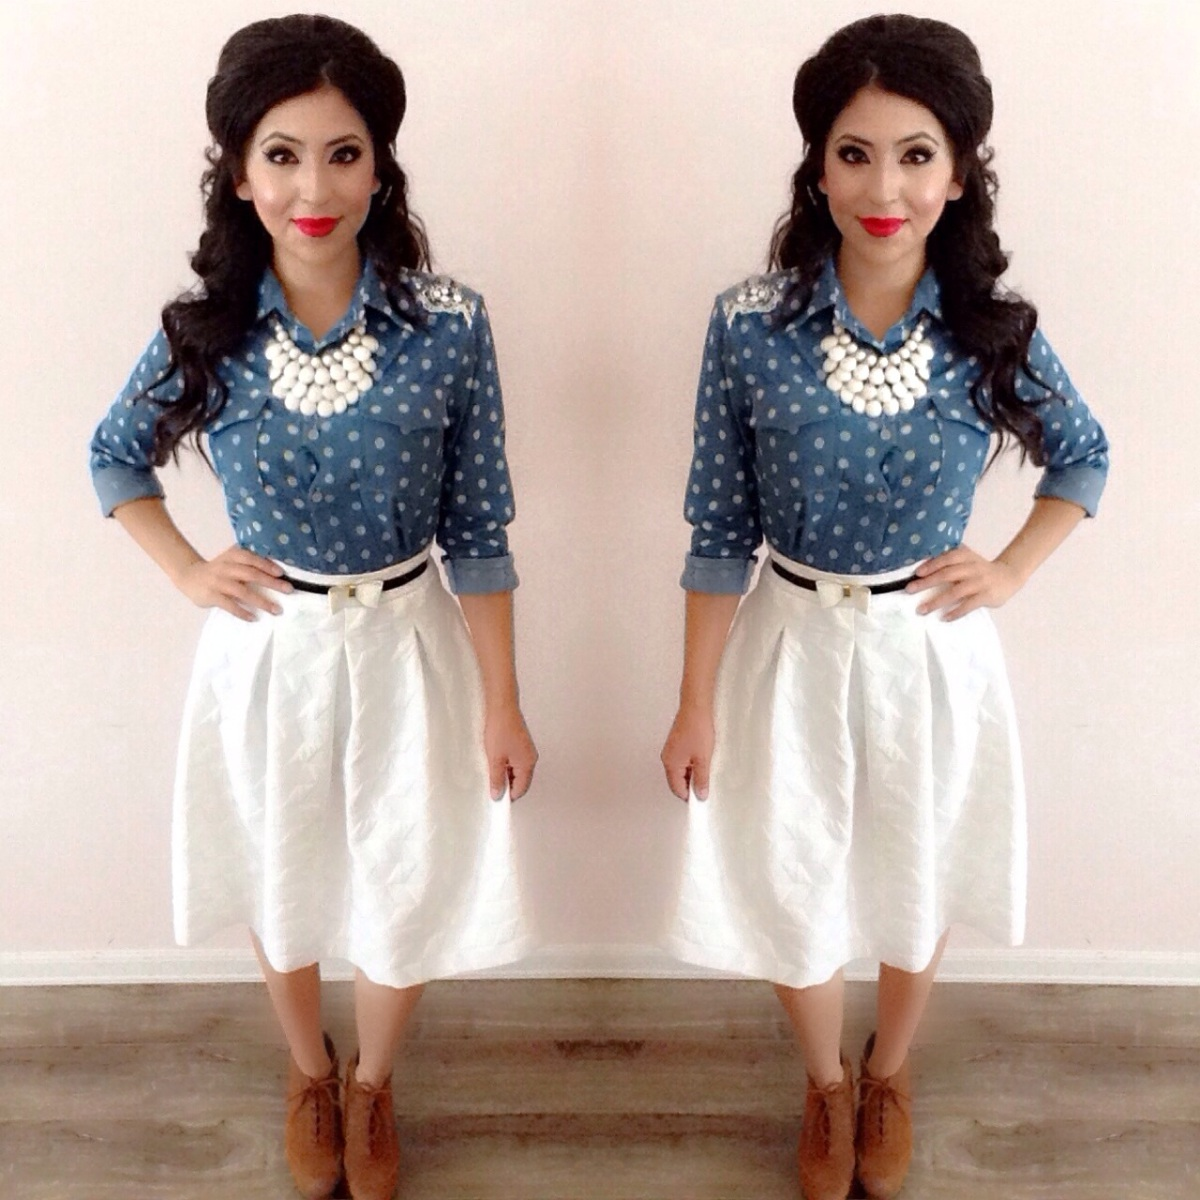 How To: Styling a White Skirt! Modest Summer Outfits ...